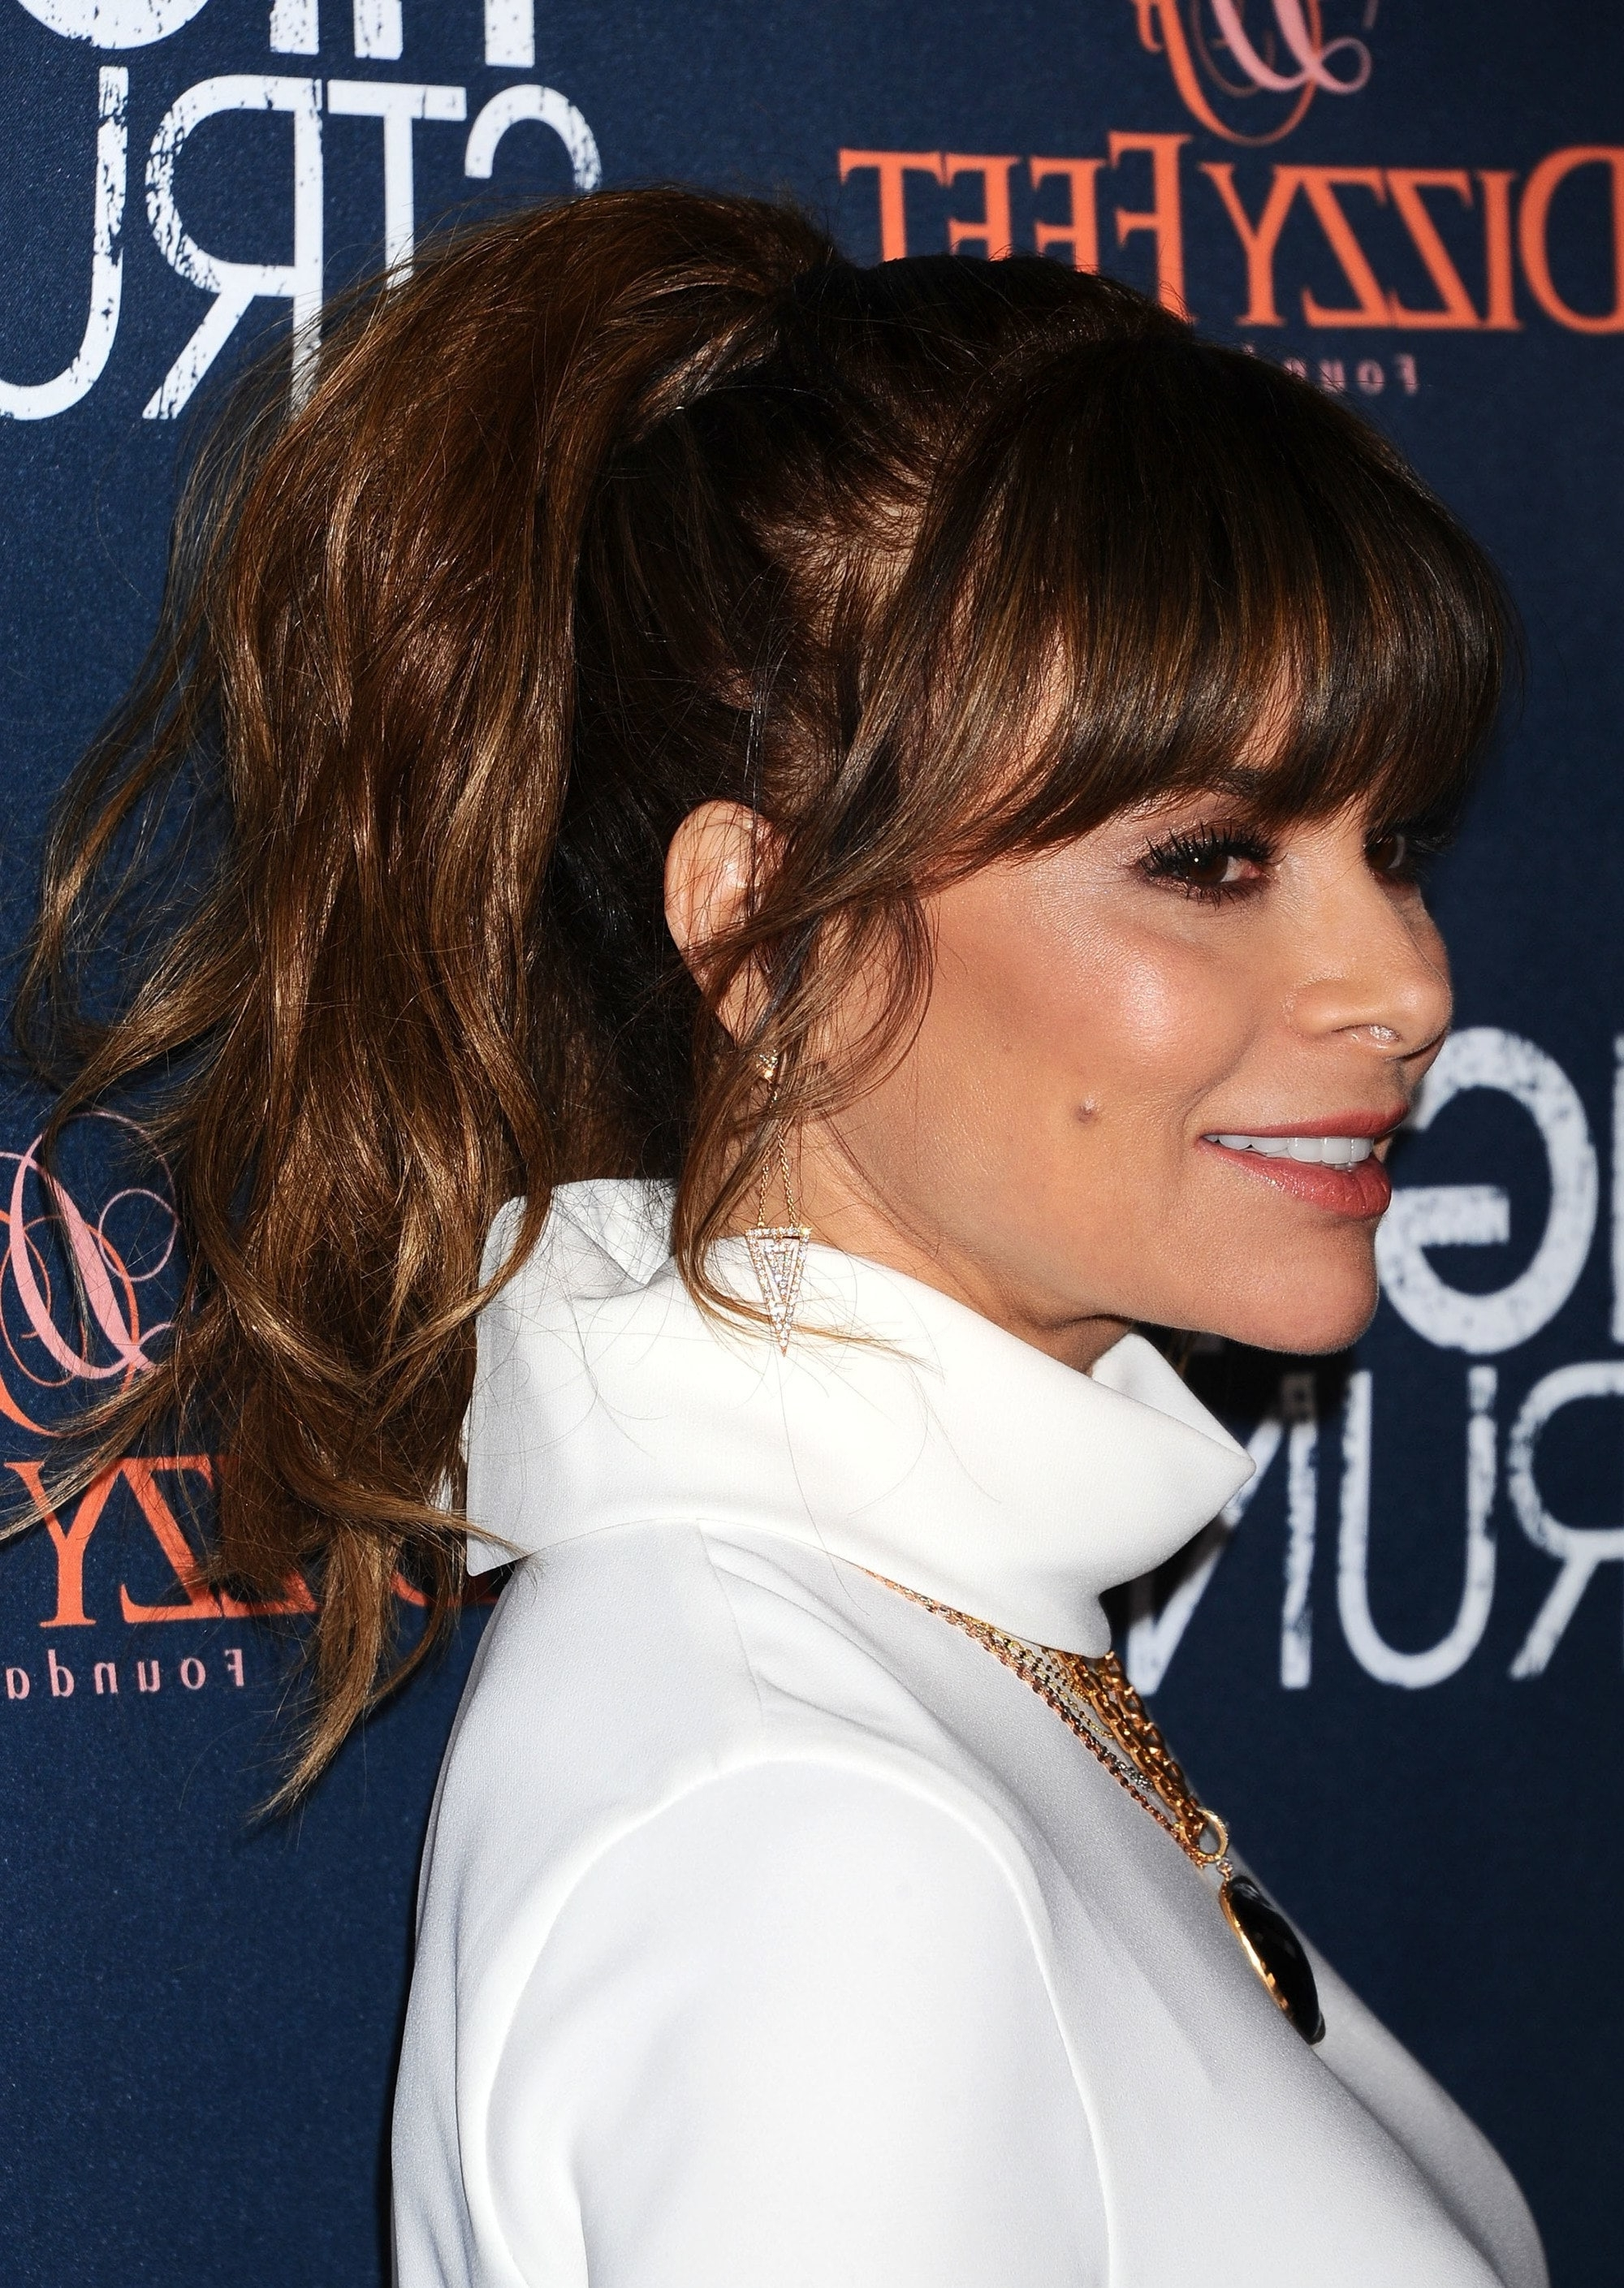 How To Do A Messy Ponytail: Video Tutorial And 7 Simple Steps Throughout Recent High Messy Pony Hairstyles With Long Bangs (View 9 of 20)